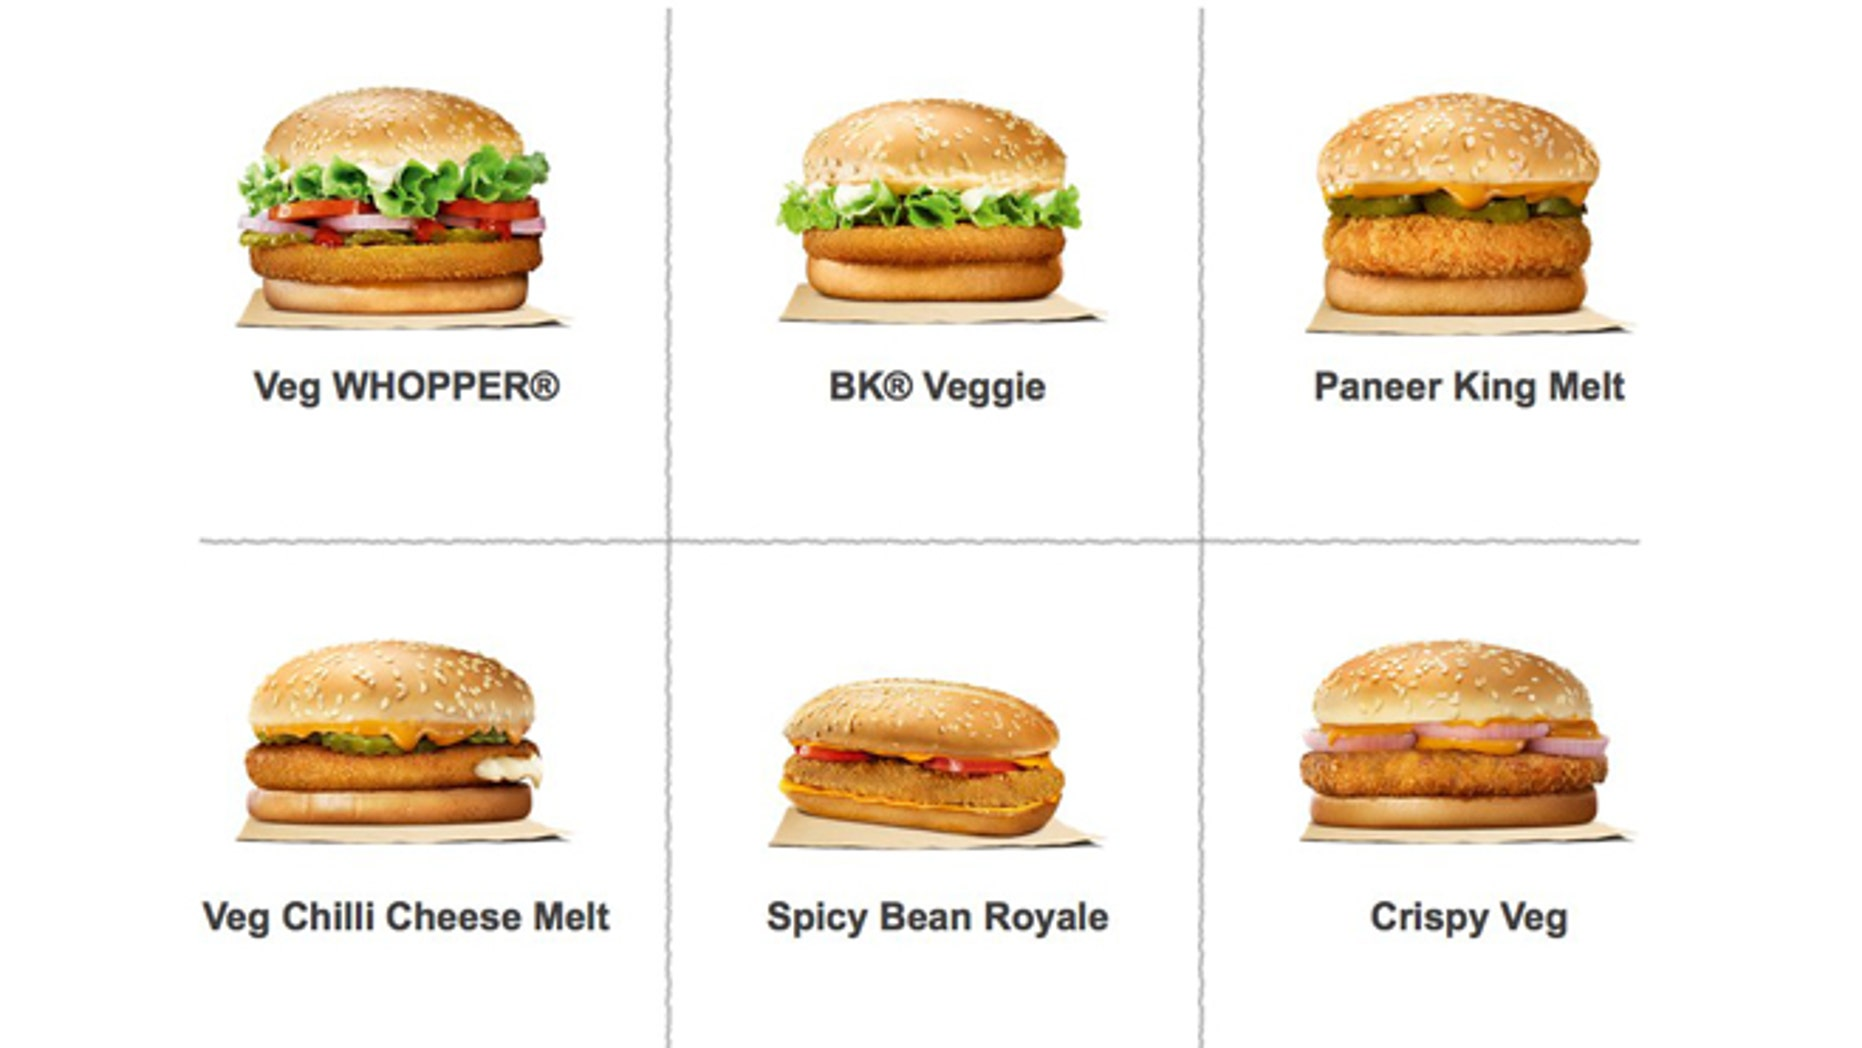 There are plenty of vegetarian options available at India's Burger King locations.